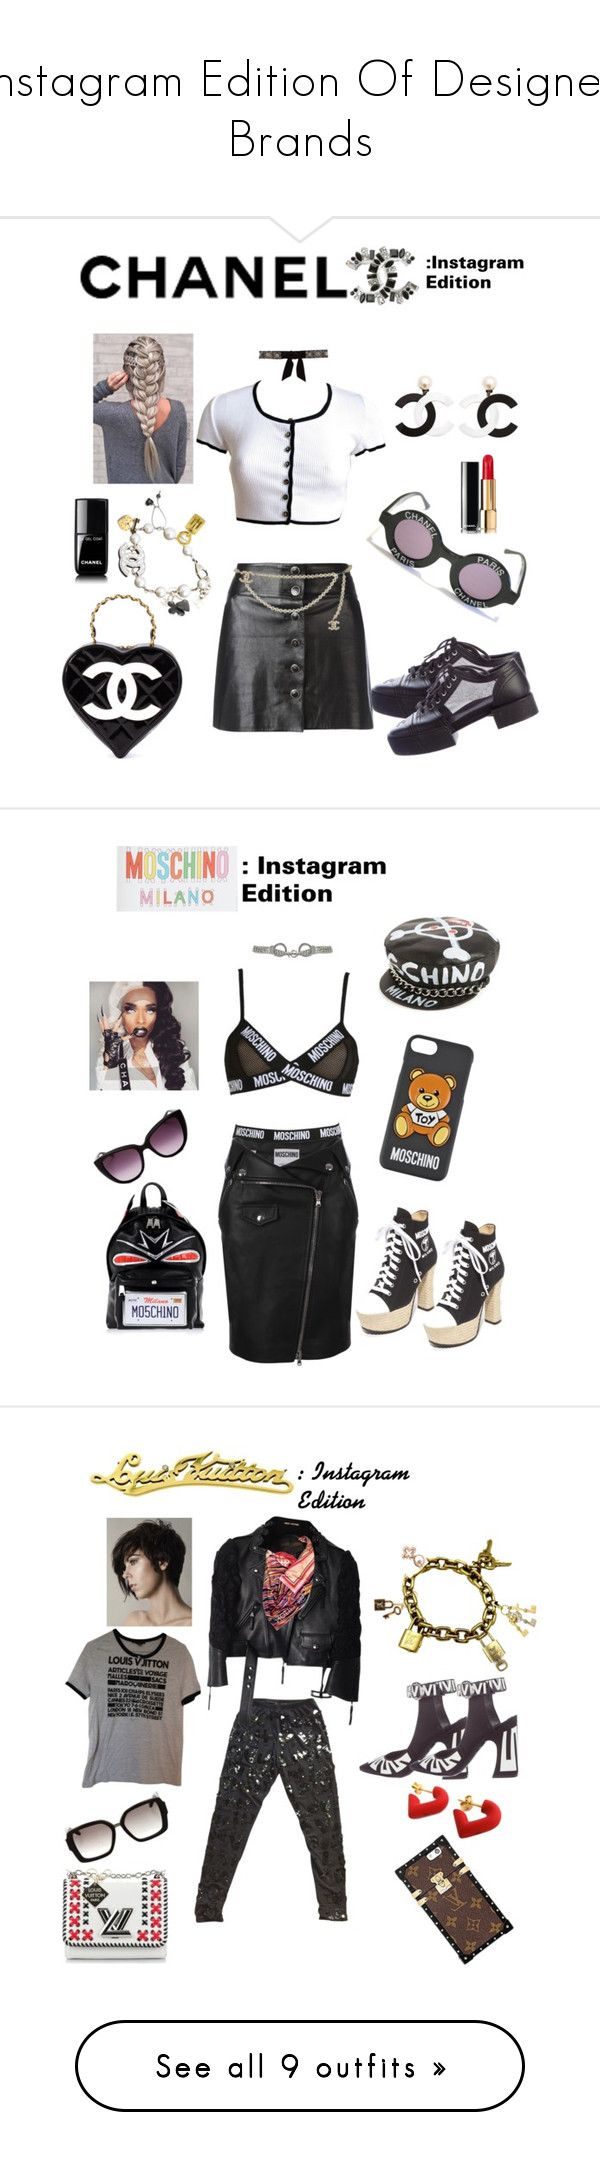 """Instagram Edition Of Designer Brands"" by libra-rima ❤ liked on Polyvore featuring Chanel, Moschino, Louis Vuitton, Fendi, Steve Madden, Humble Chic, NIKE, Balenciaga, Levi's and TILDA BIEHN"